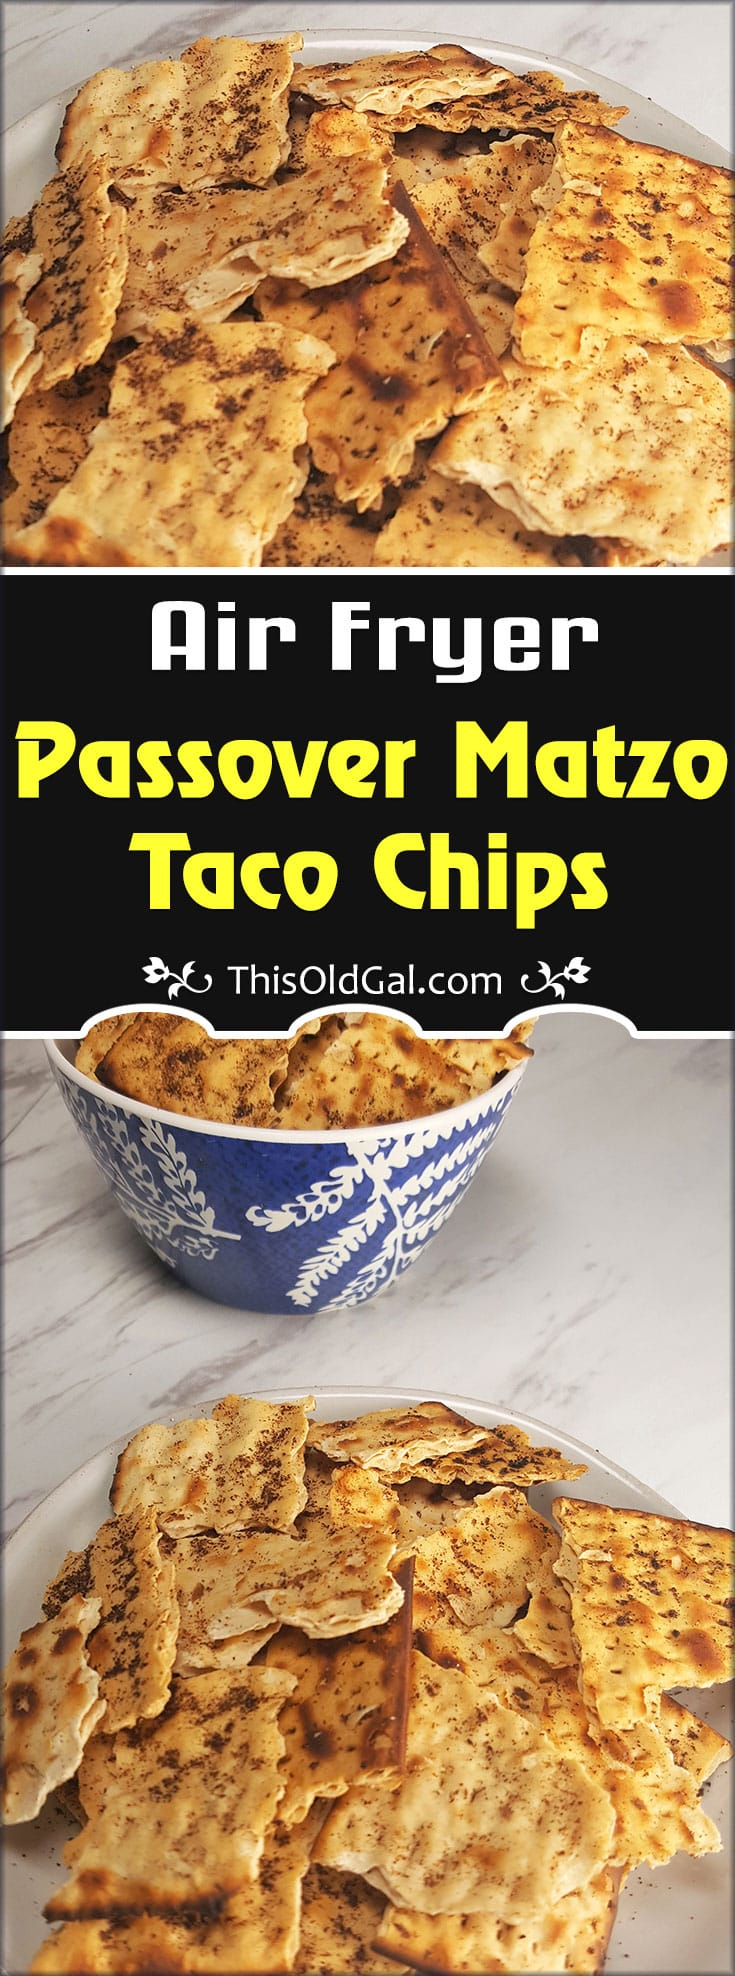 Air Fryer Passover Matzo Taco Chips